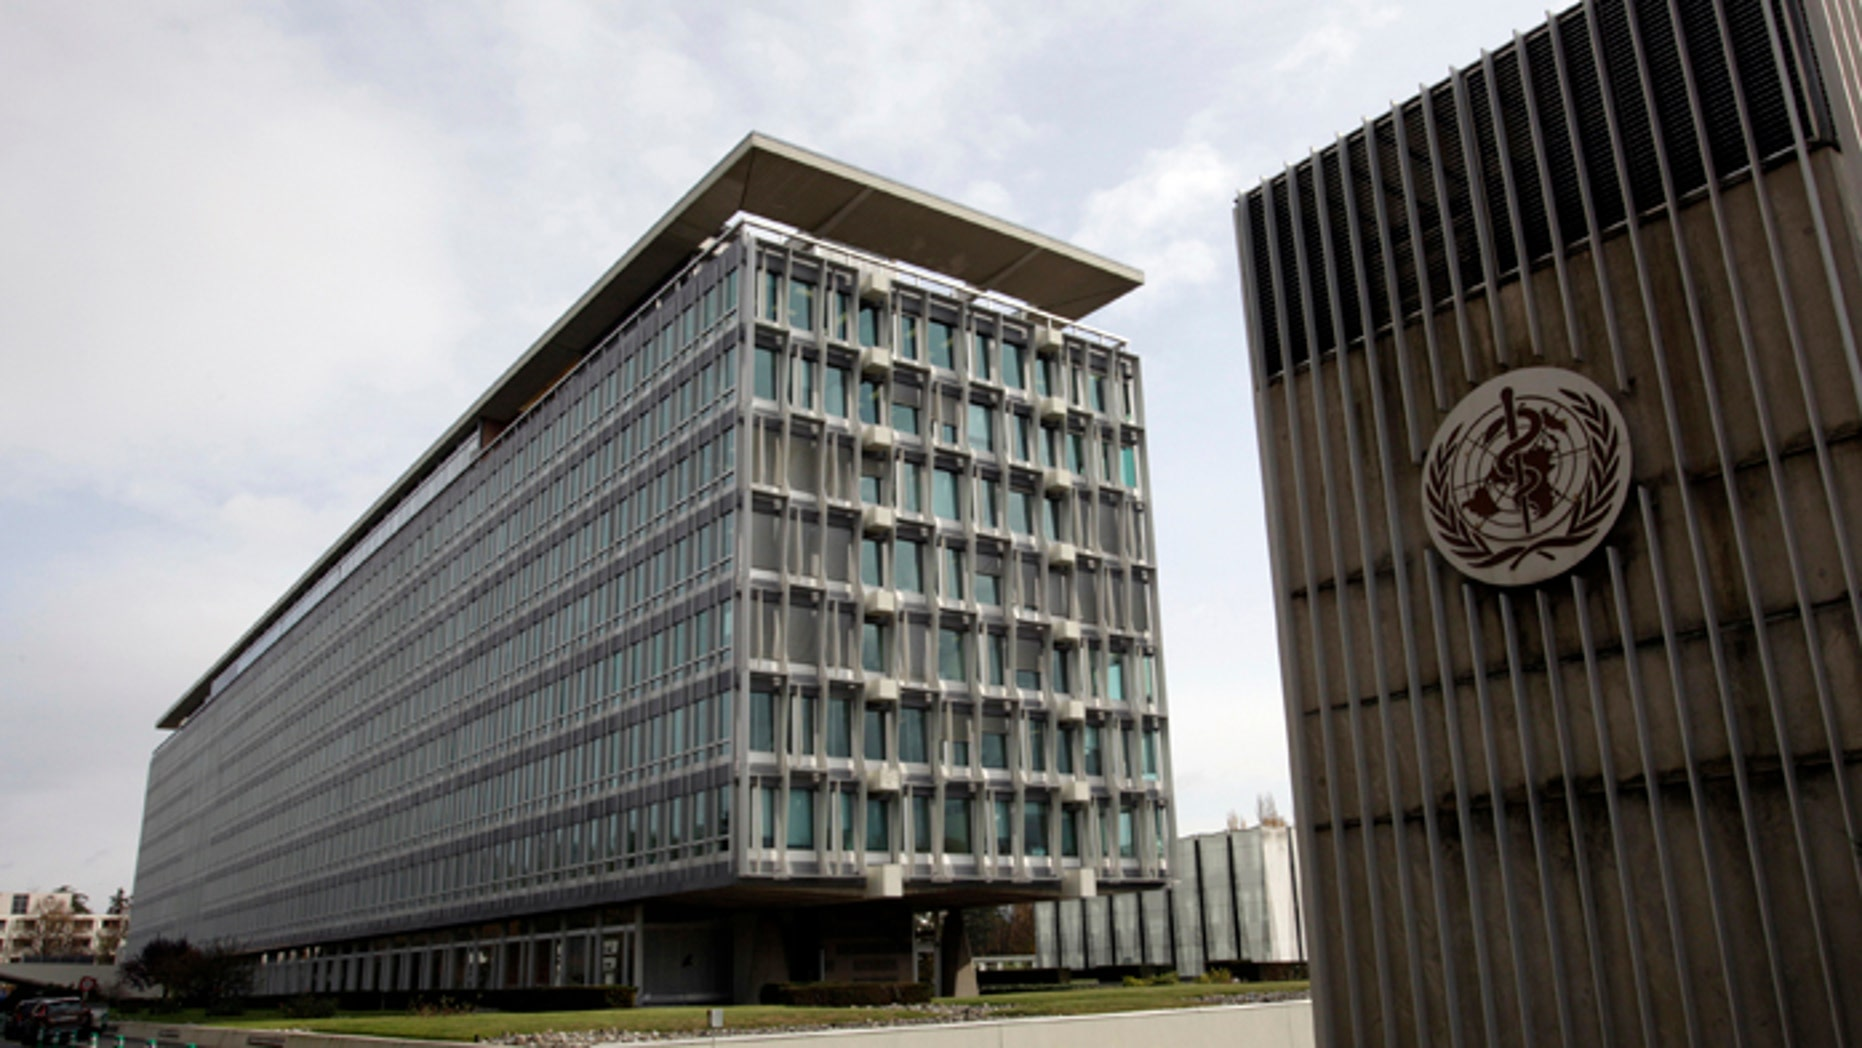 The World Health Organization (WHO) headquarters is seen in Geneva.